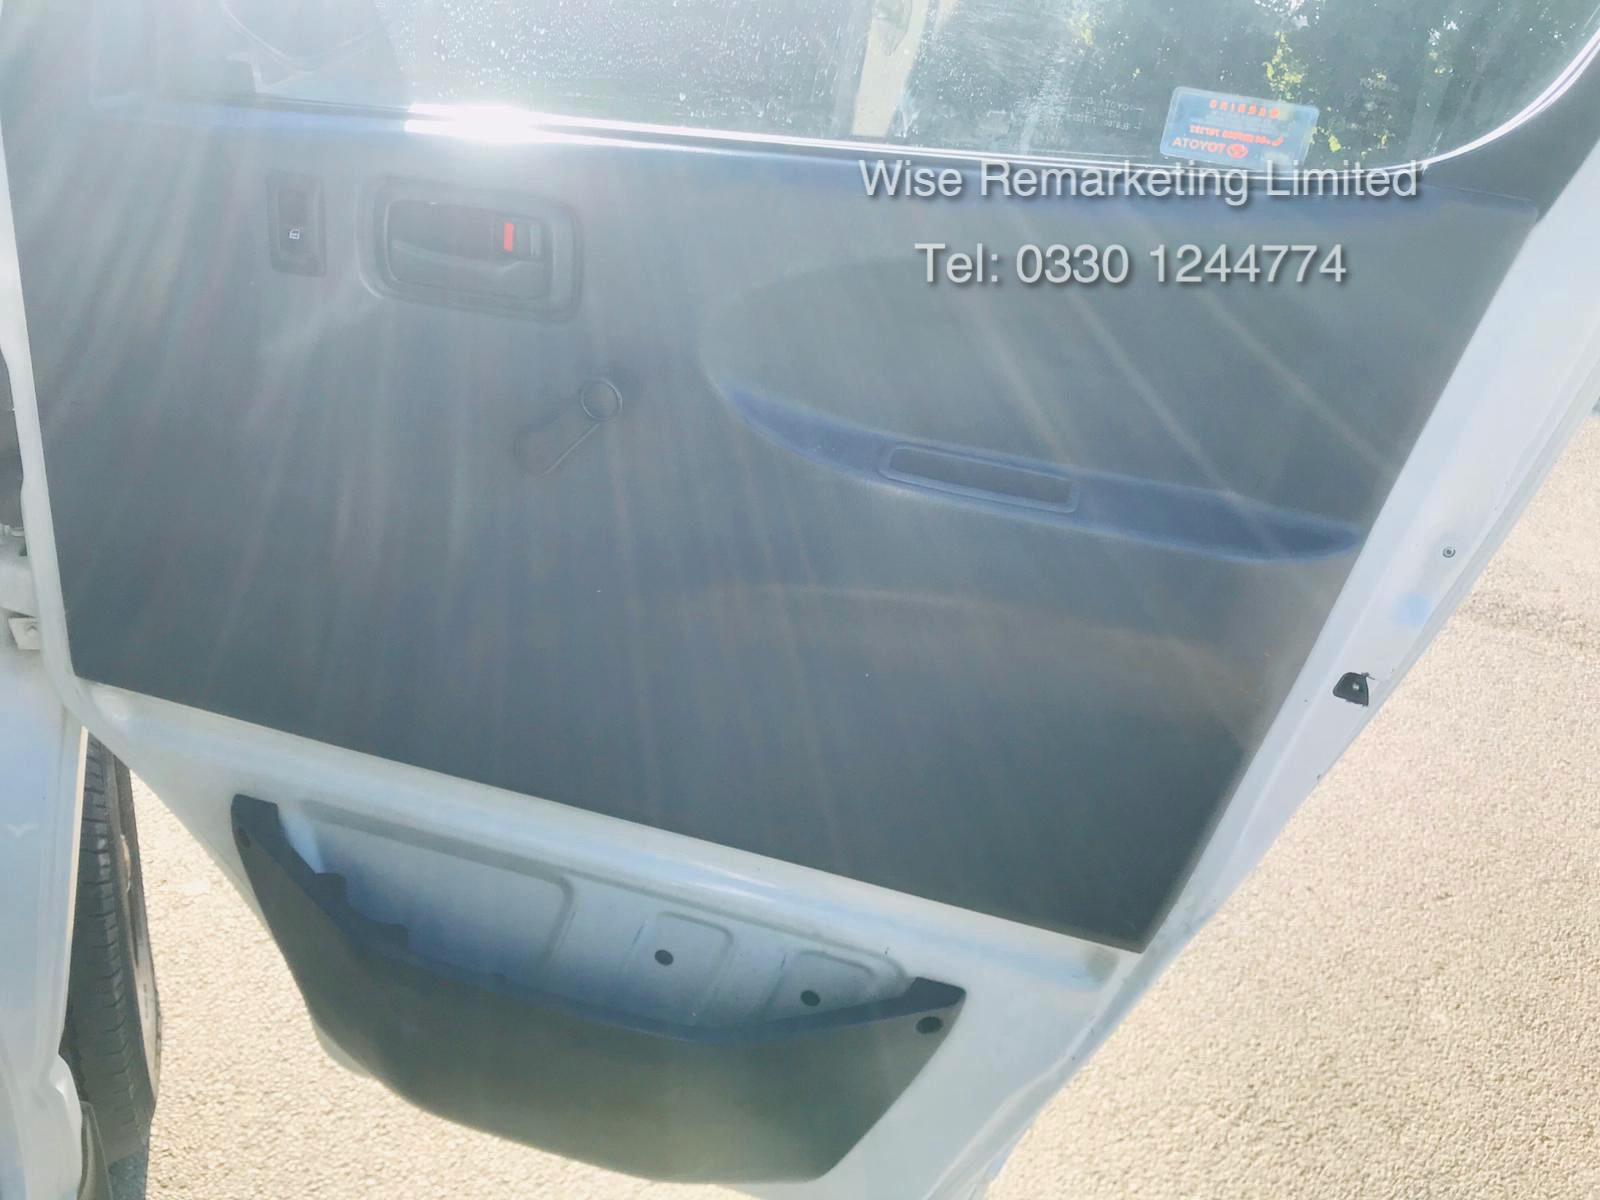 Toyota Hiace 300 GS 2.5 D4D - 2003 03 Reg - 1 Keeper From New - 3 Seater - Roof Rack - Image 14 of 15